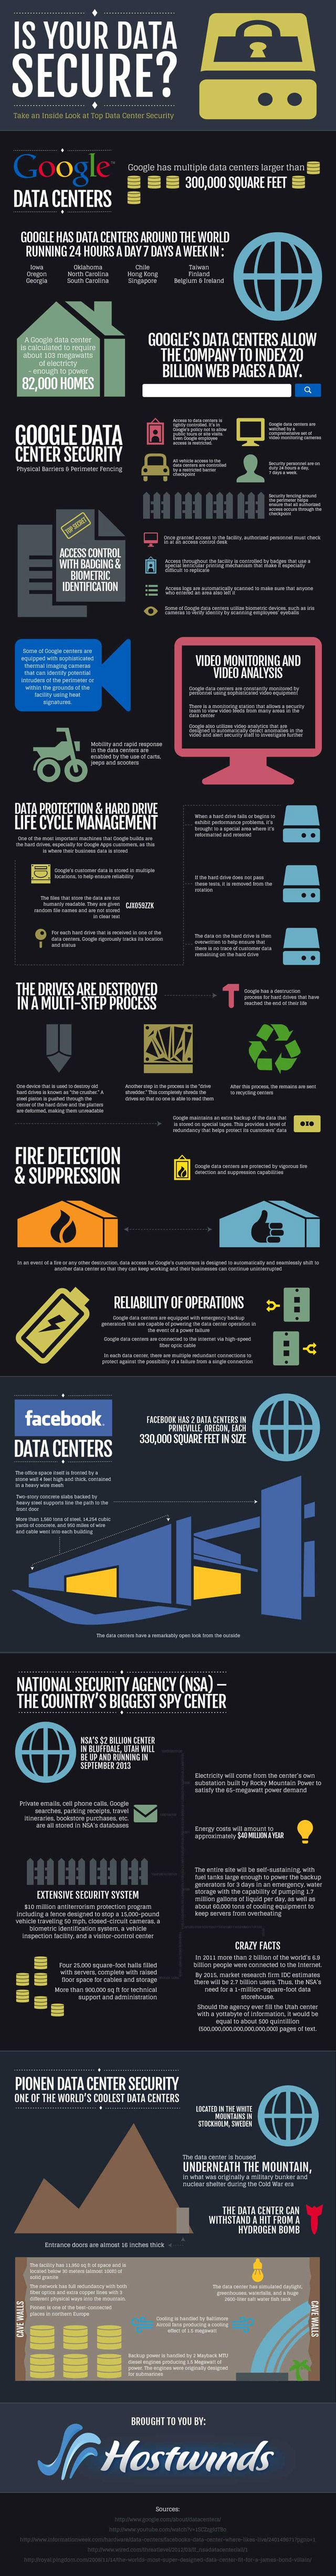 This infographic displays some of the more innovative ways in which Google, along with some of the other big tech firms, works tirelessly to protect the data of personal and business users – both foreign and domestic.